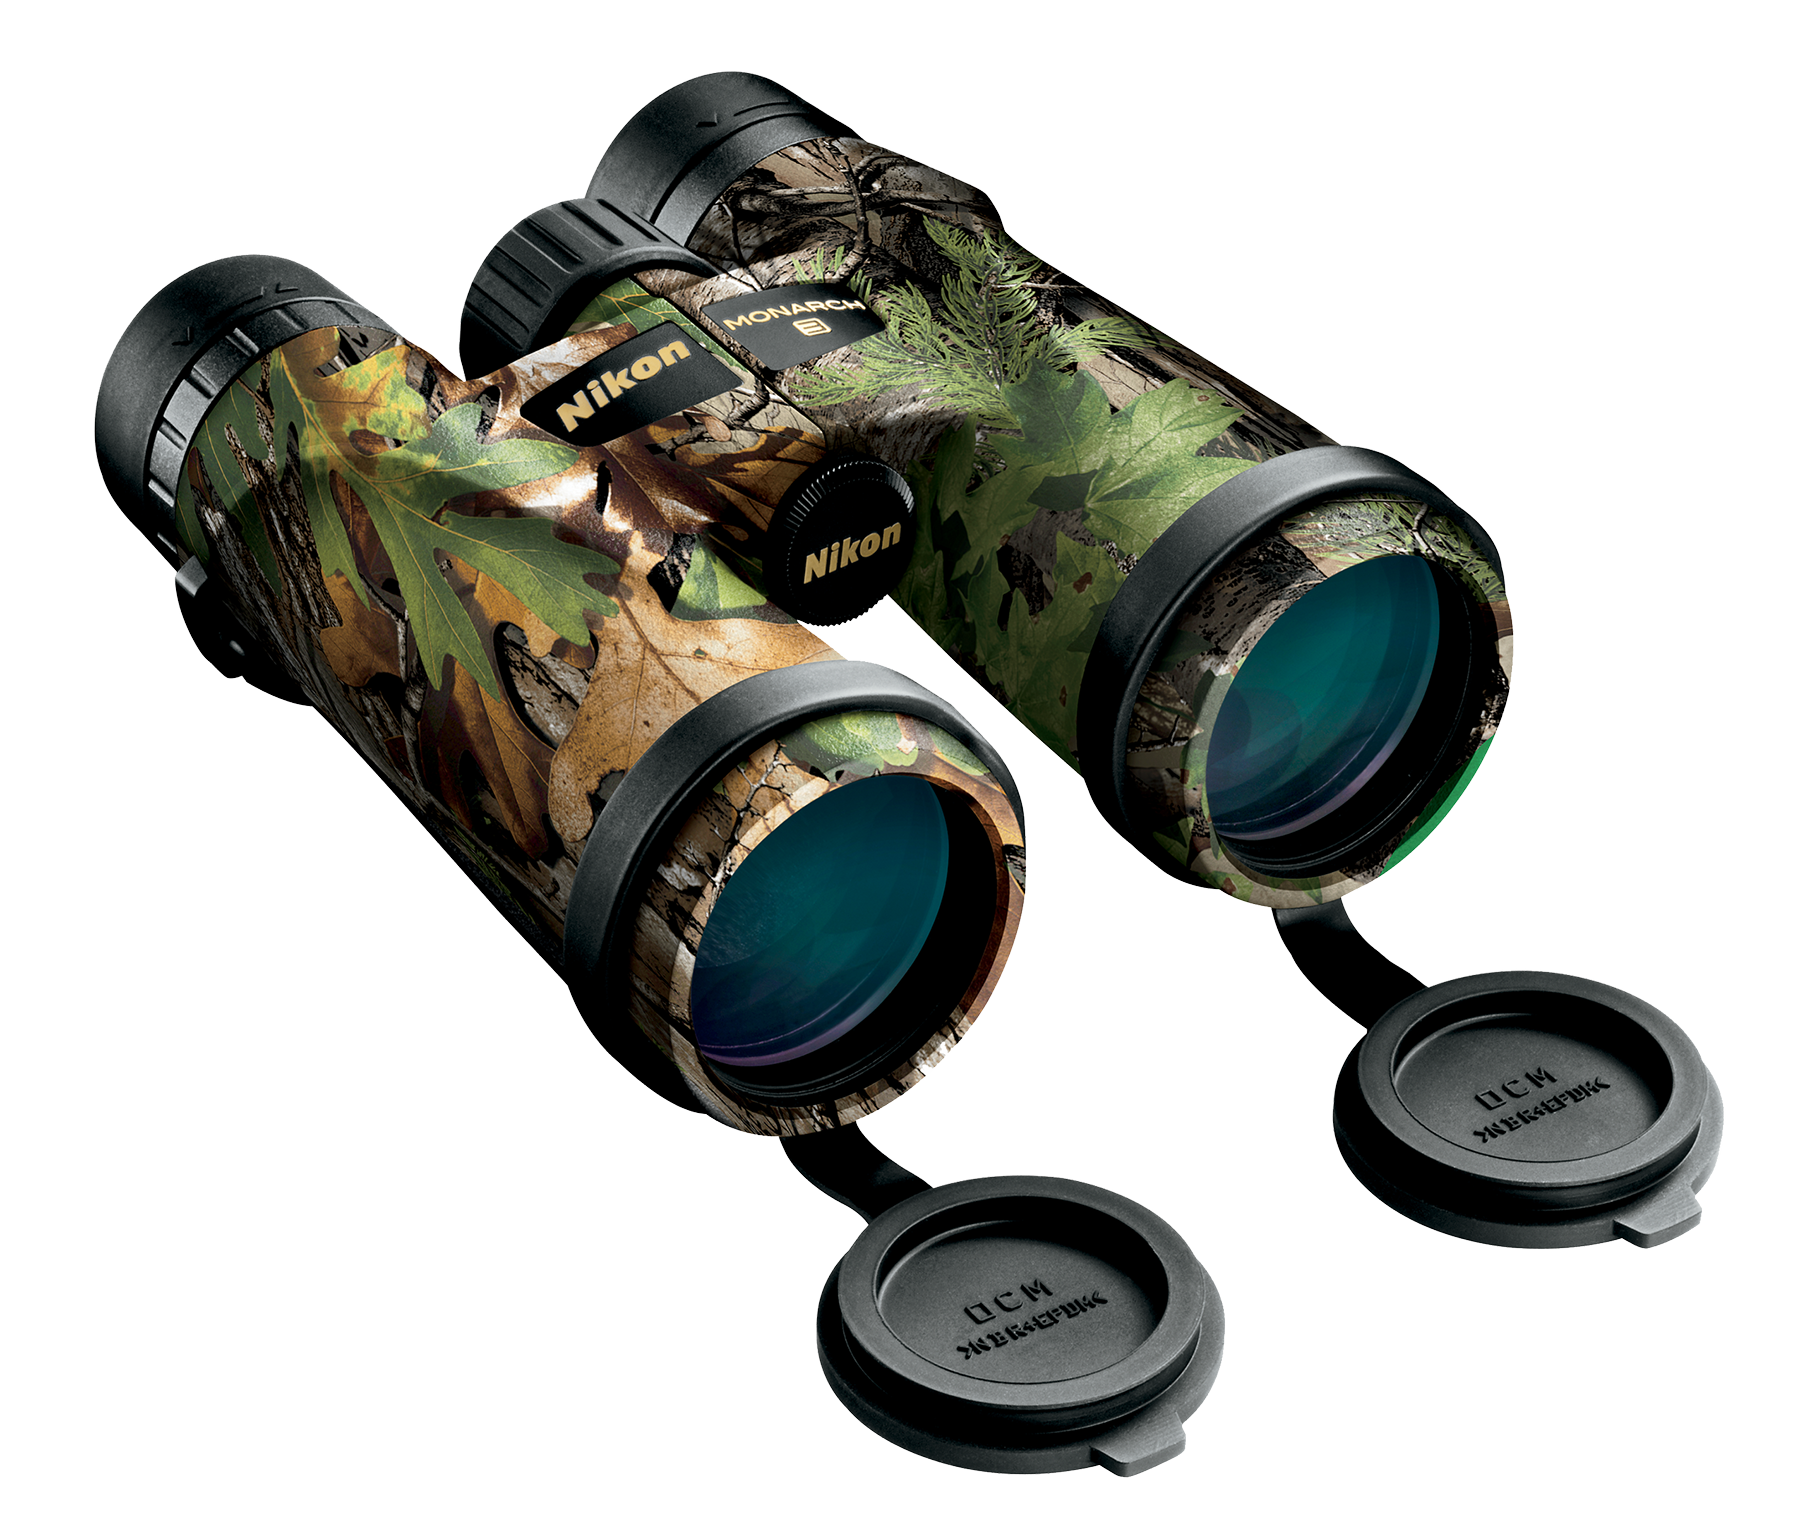 Nikon 16006 Monarch 8x 42mm 330 ft @ 1000 yds FOV 24.1mm Eye Relief Realtree Xtra Green